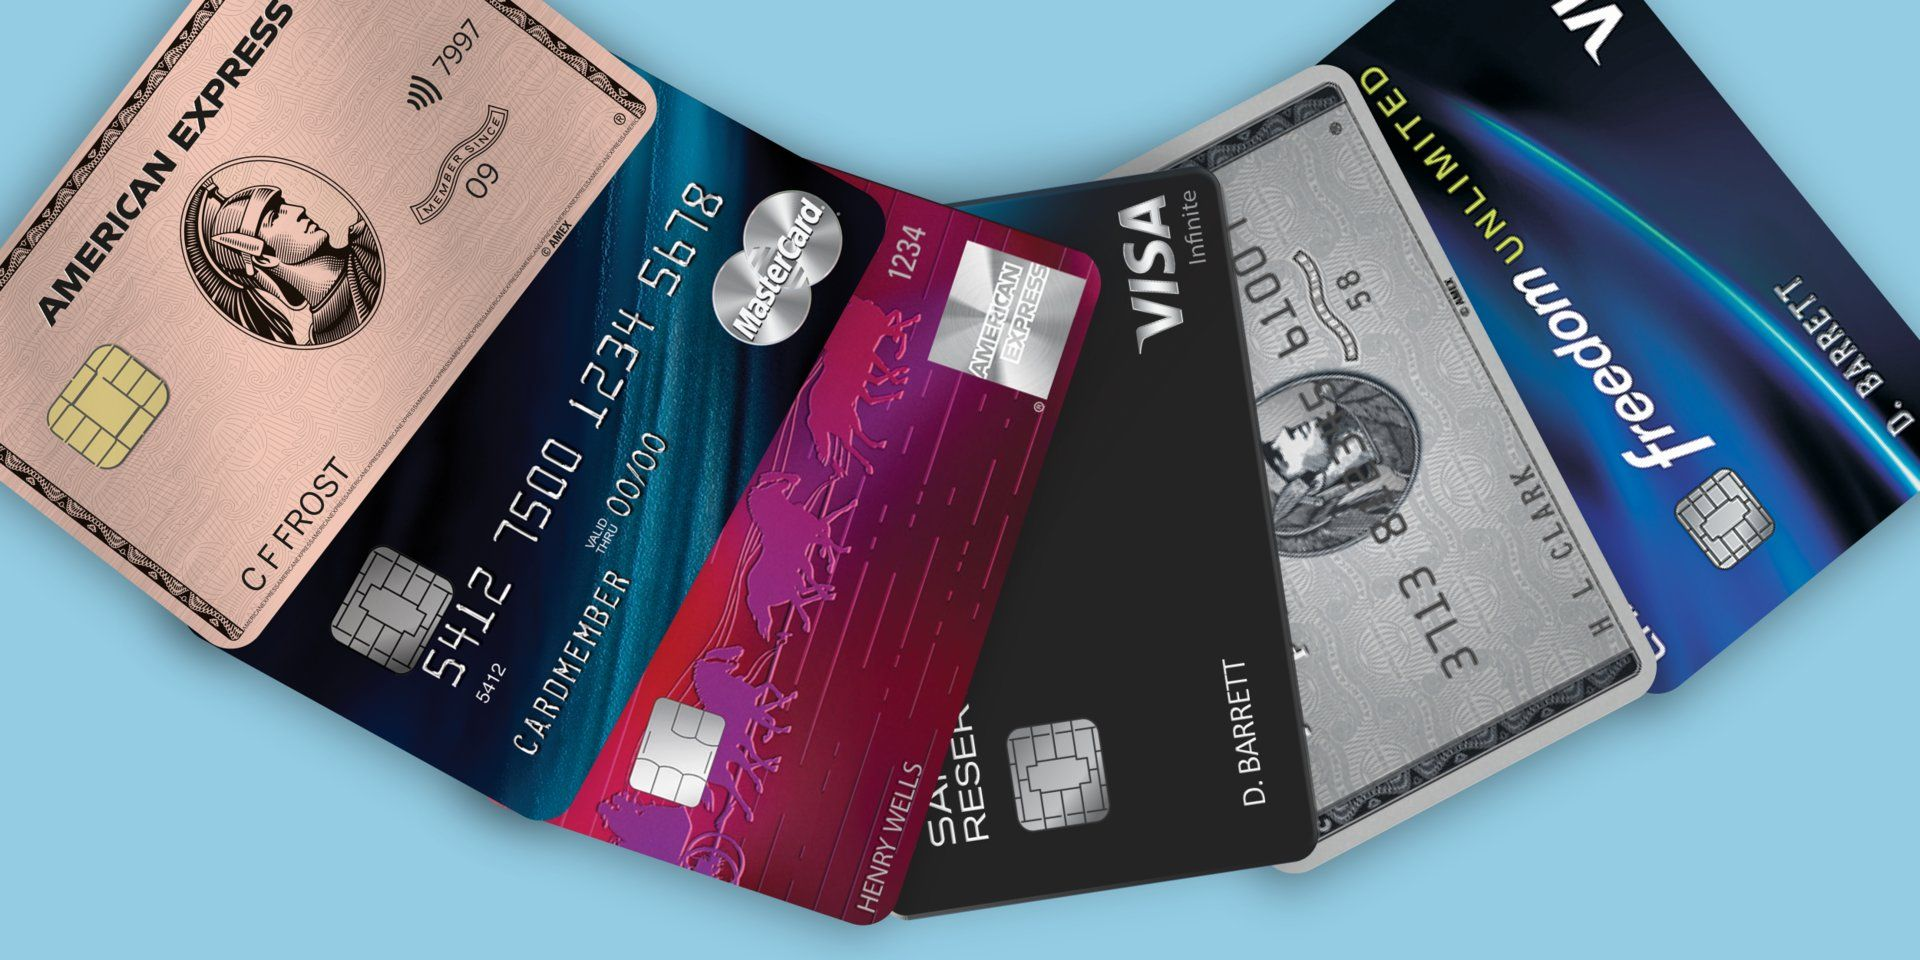 The Best Credit Card Offers In May 2021 Earn Points Miles Or Cash Back In 2021 Credit Card Deals Best Credit Card Offers Best Credit Cards